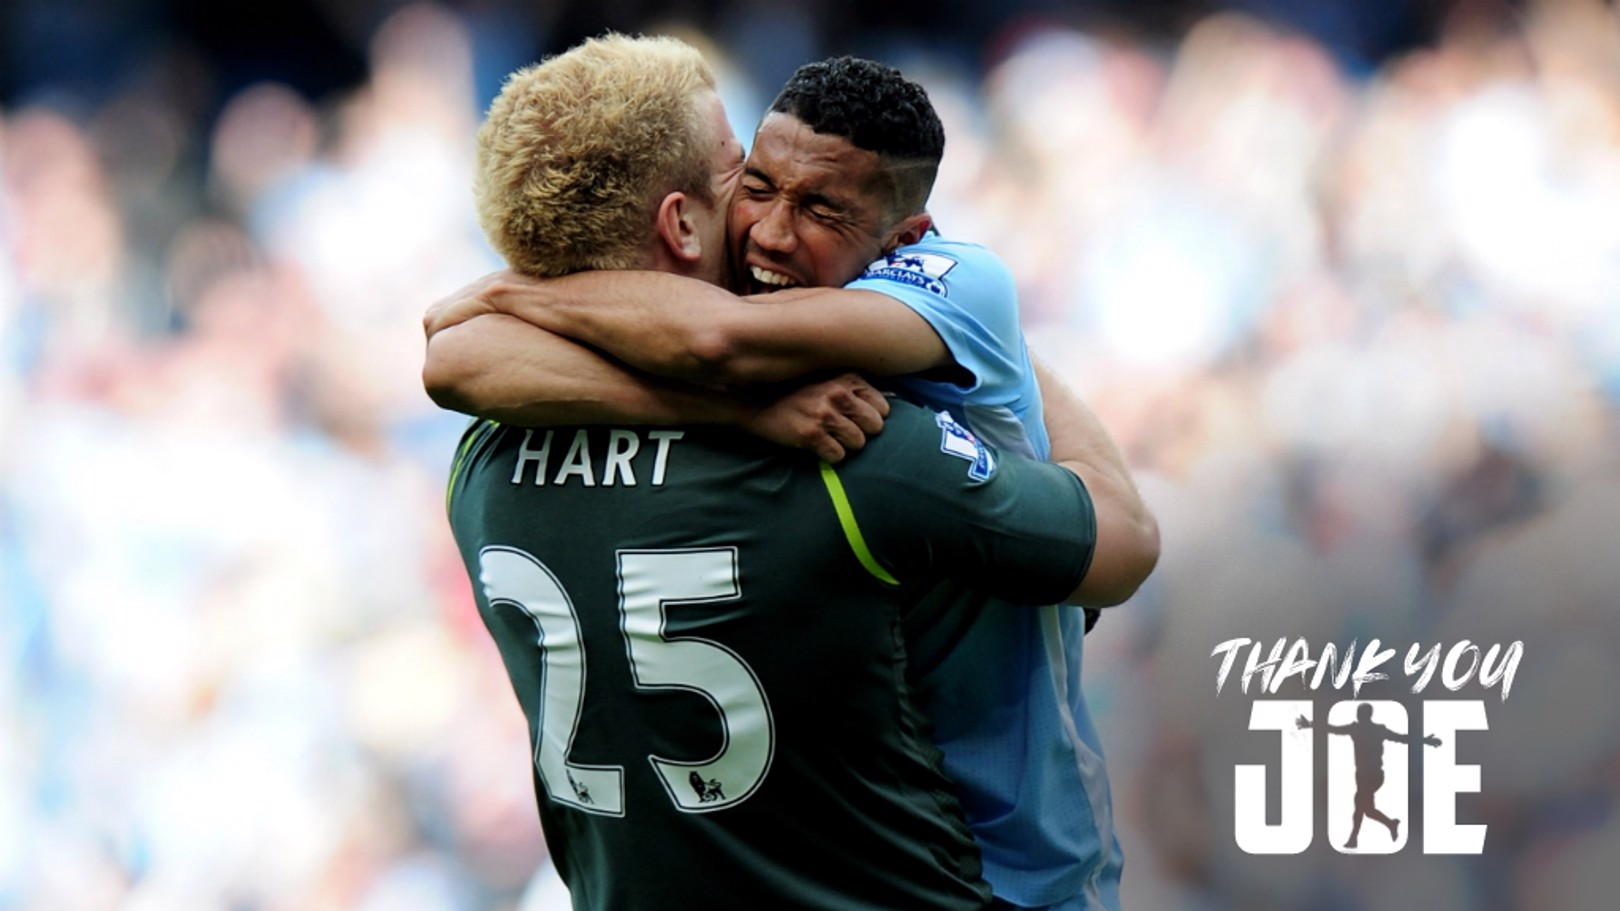 THANK YOU, JOE: Joe Hart's City career in numbers